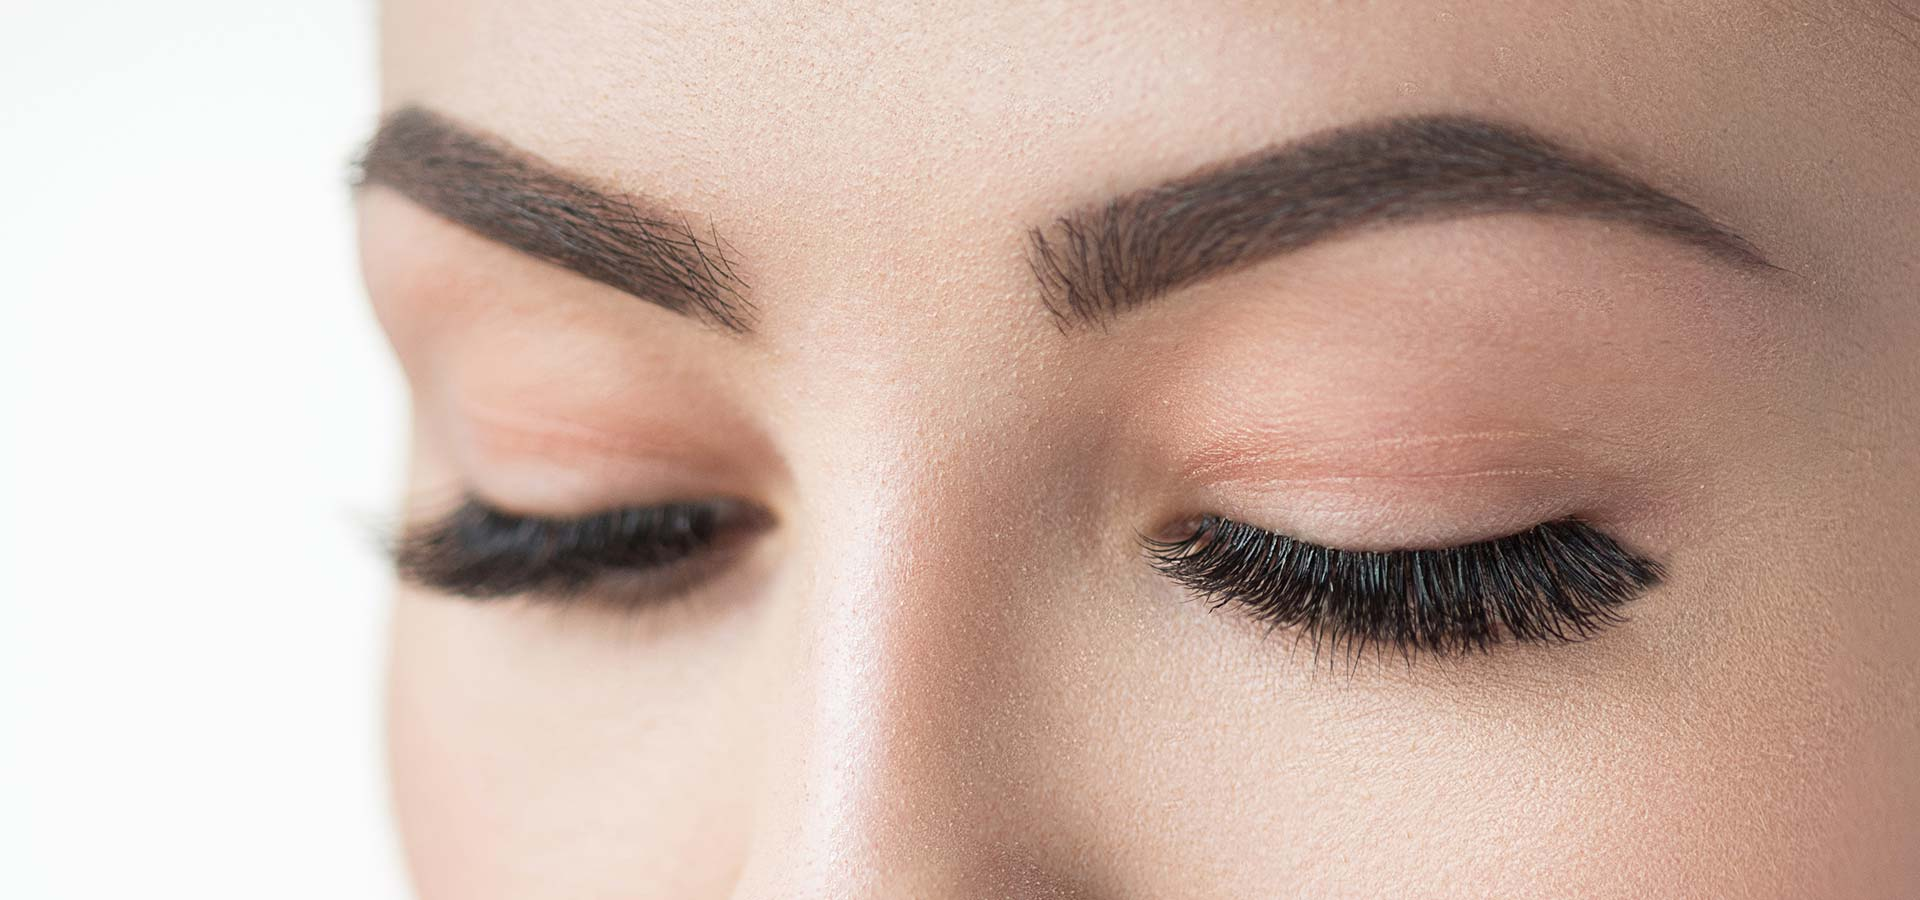 Close-up of closed woman's eyes and eyebrows.